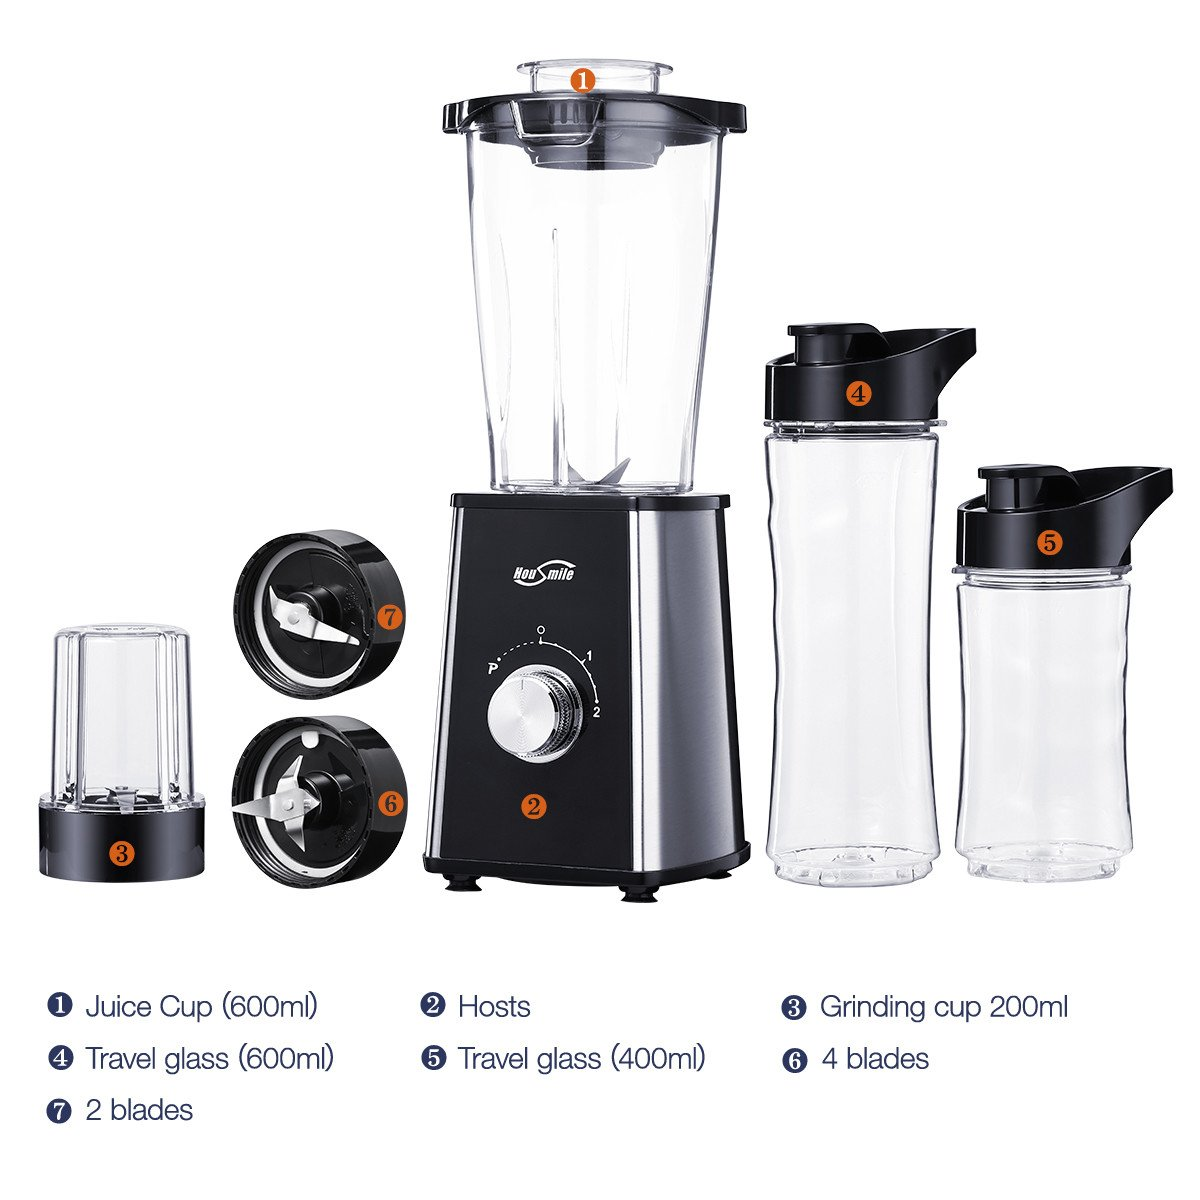 Housmile Smoothie Blender, 7-Piece Countertop with 300 Watt Base, High-Speed for Shakes and Smoothies & Ice, Ice, White by Housmile (Image #6)